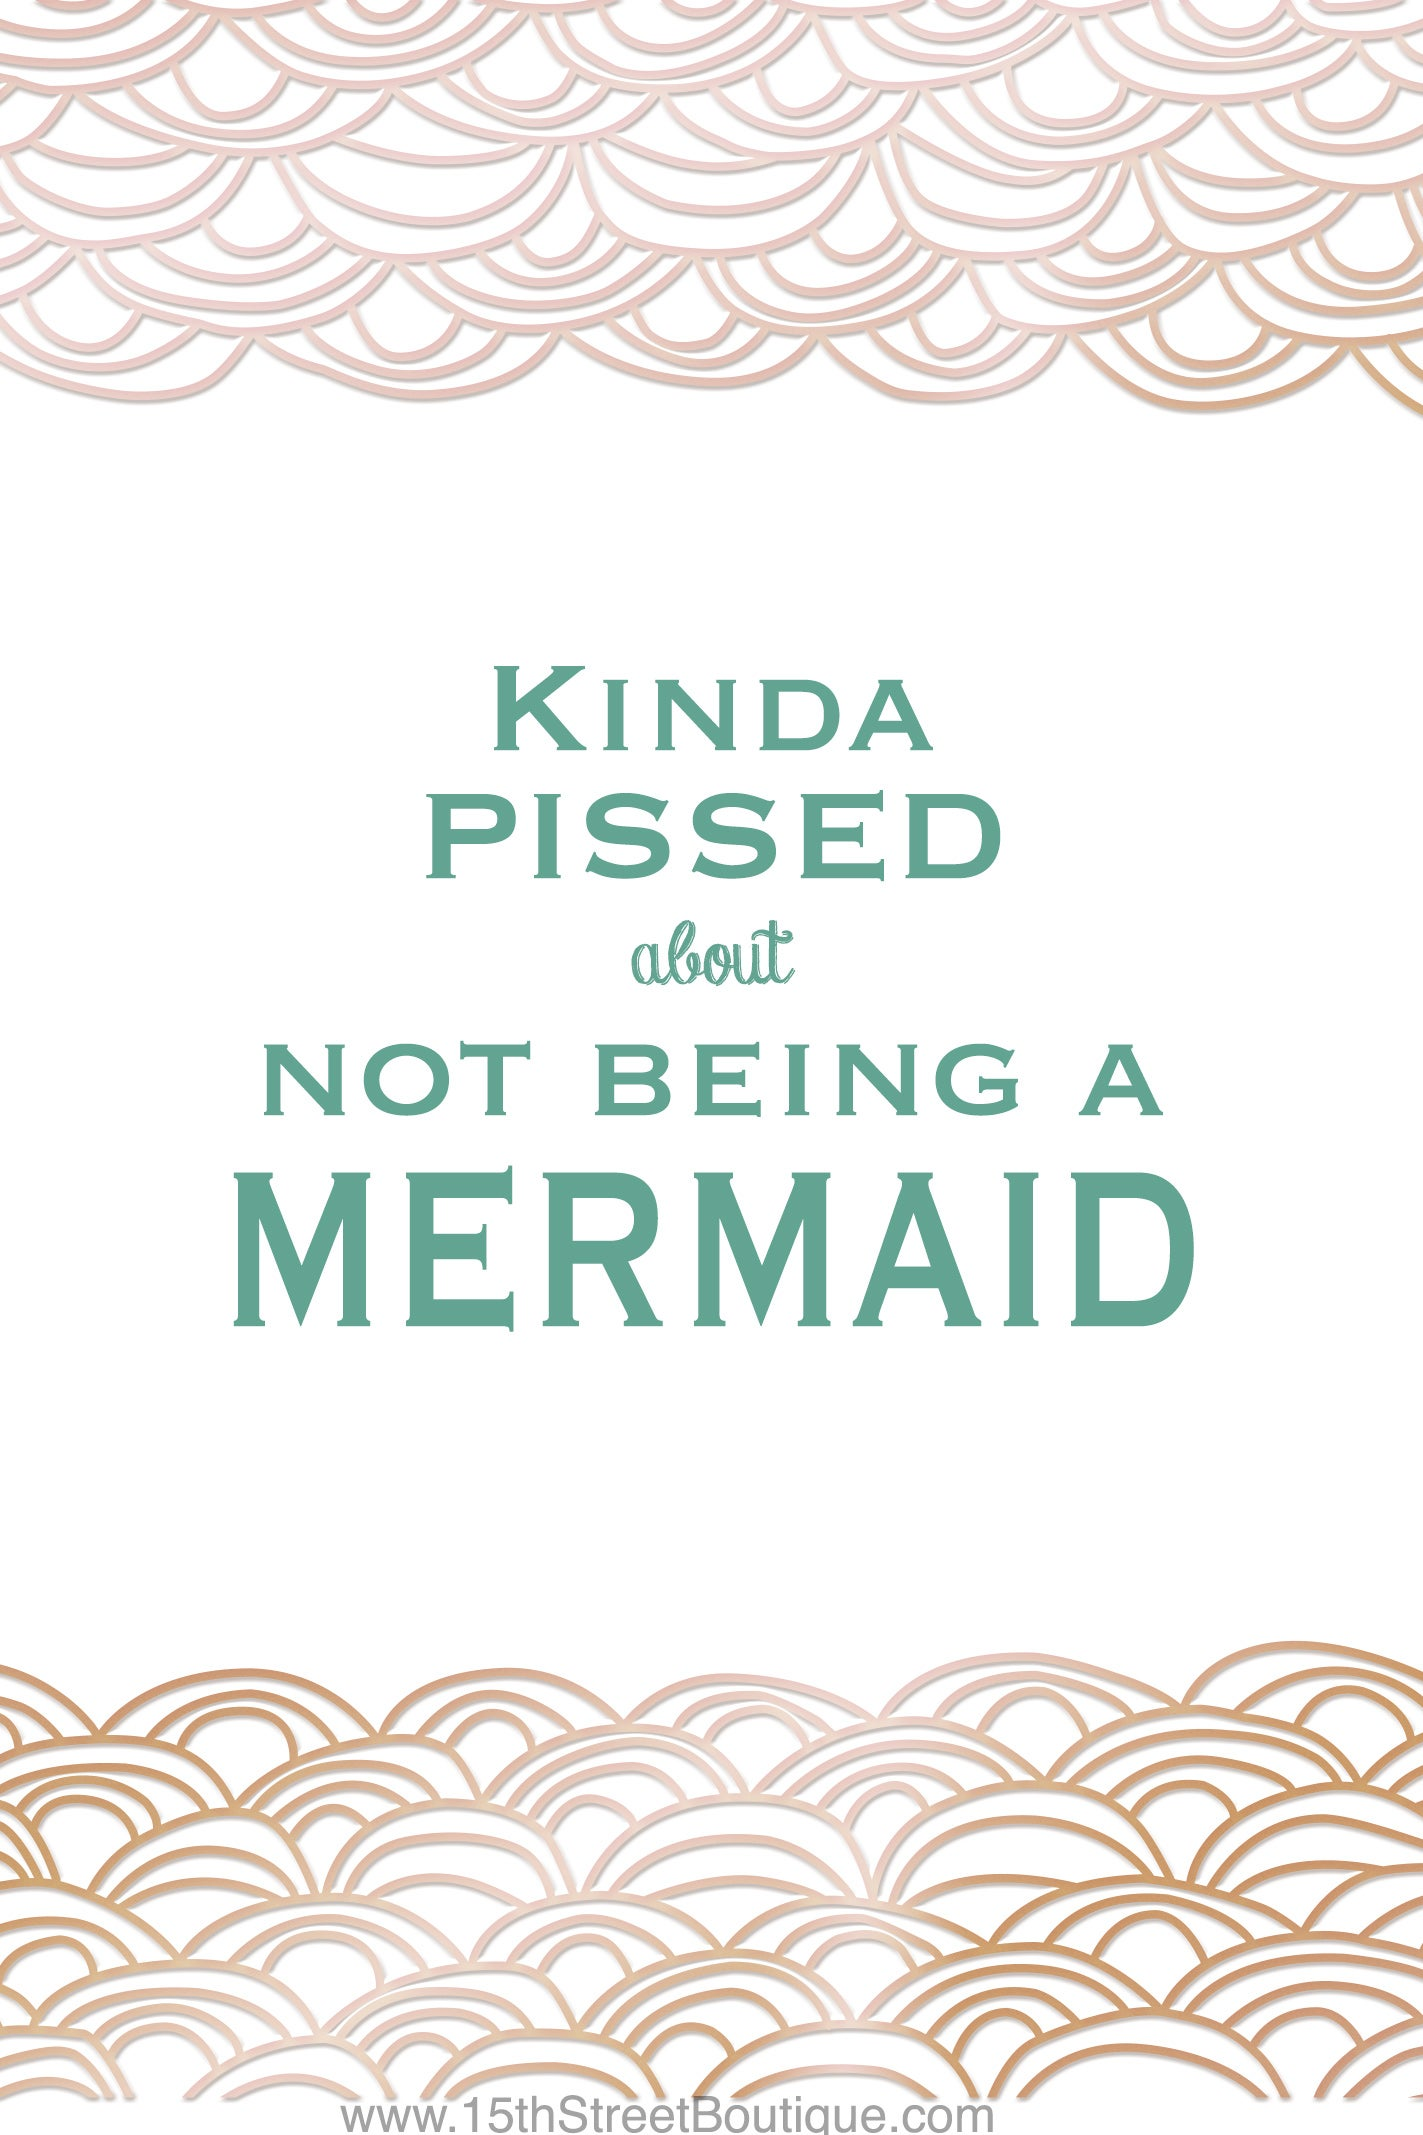 Image of Kinda Pissed About Not Being a Mermaid 5x7 Art Print Card